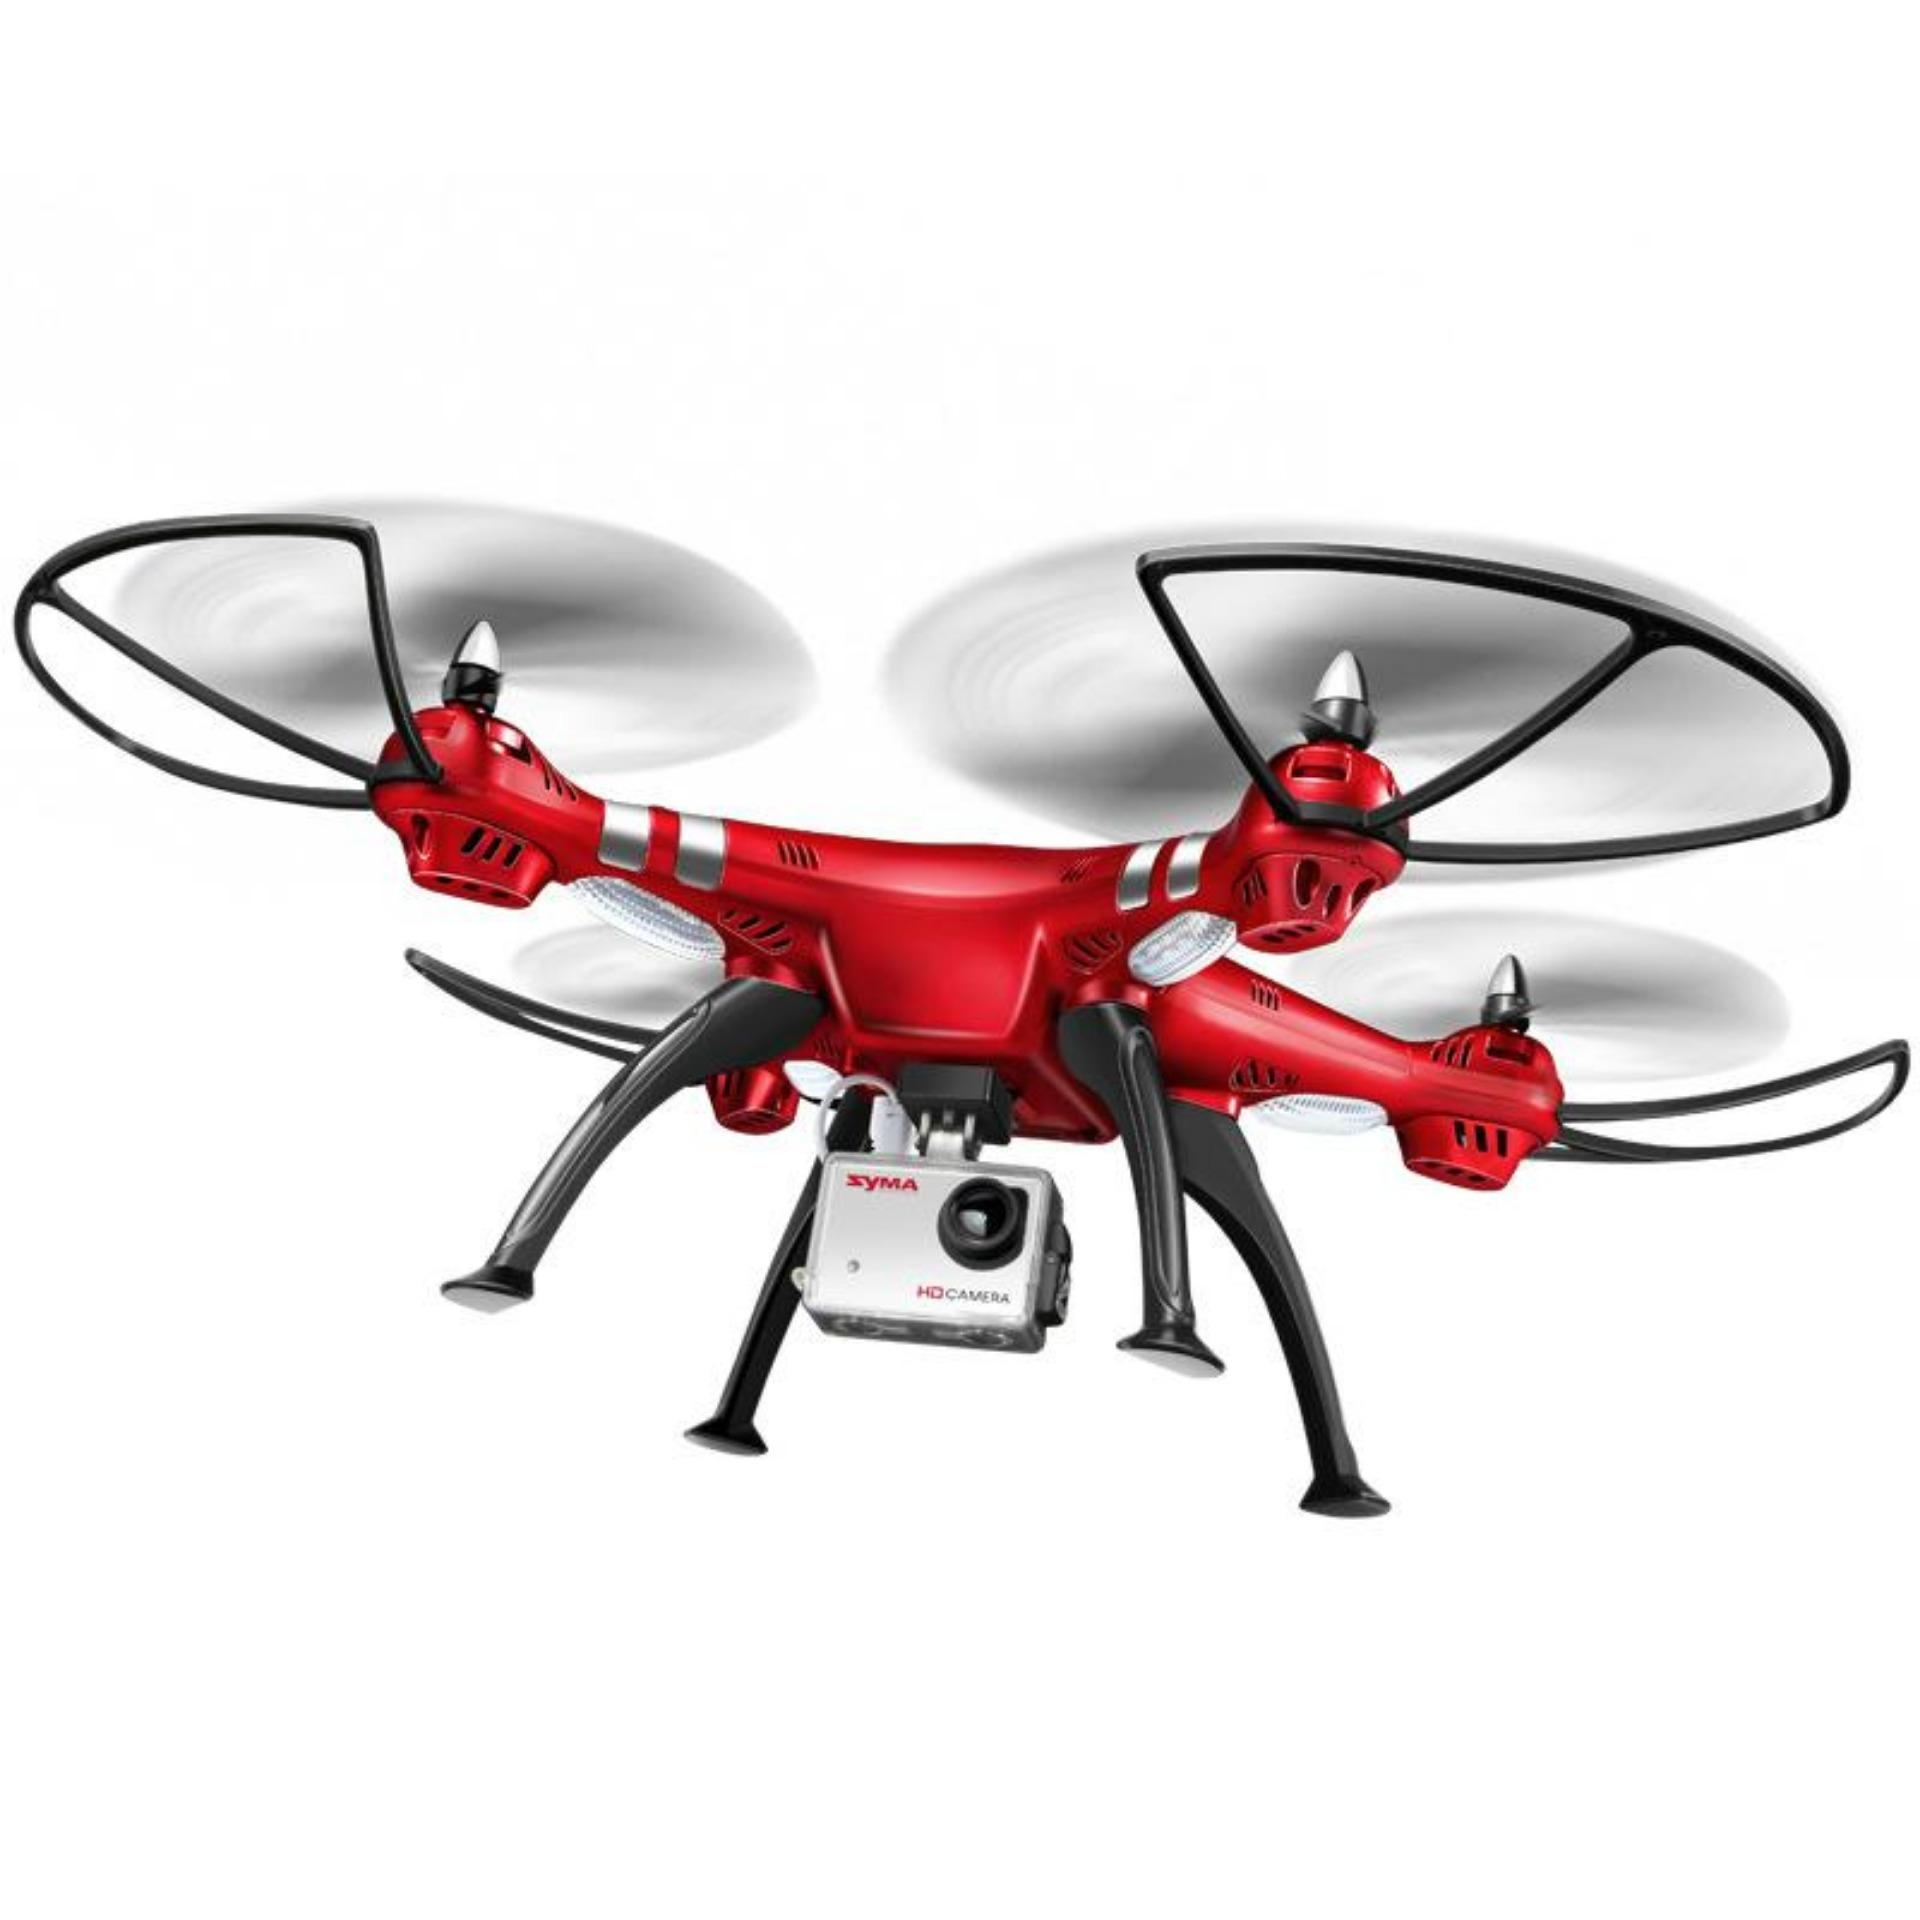 Drone Symaa X8HG Camera Udara Foto Aerial Quadcopter Drone Helicam Murah Hubsan Pioneer